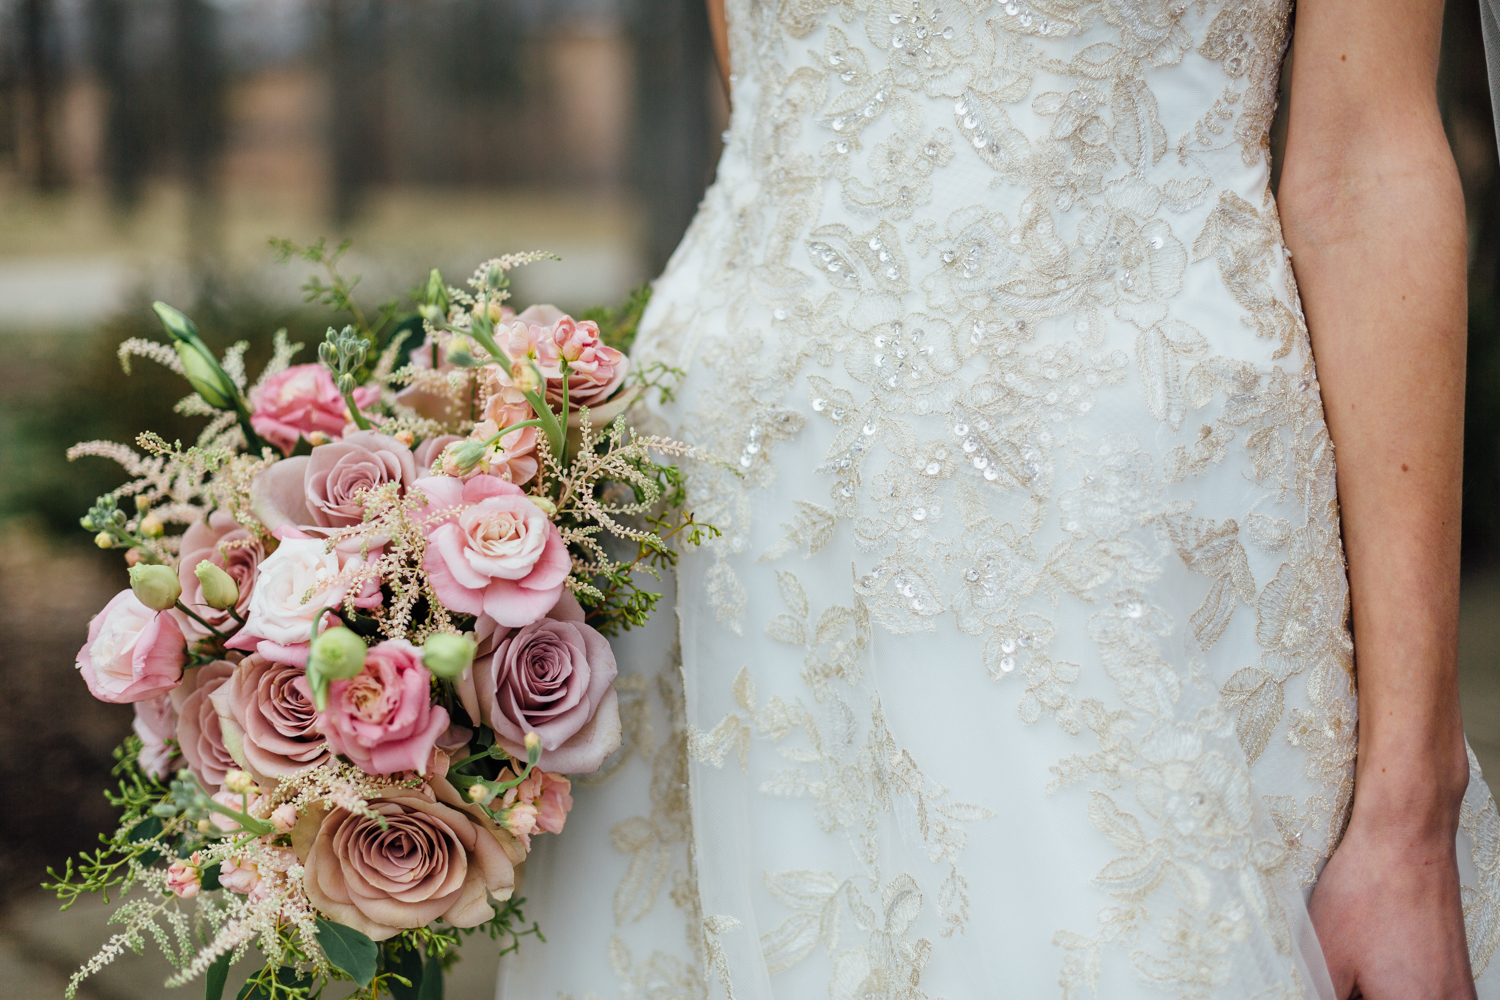 Fun, Intimate Spring Wedding by Corrie Mick Photography-22.jpg